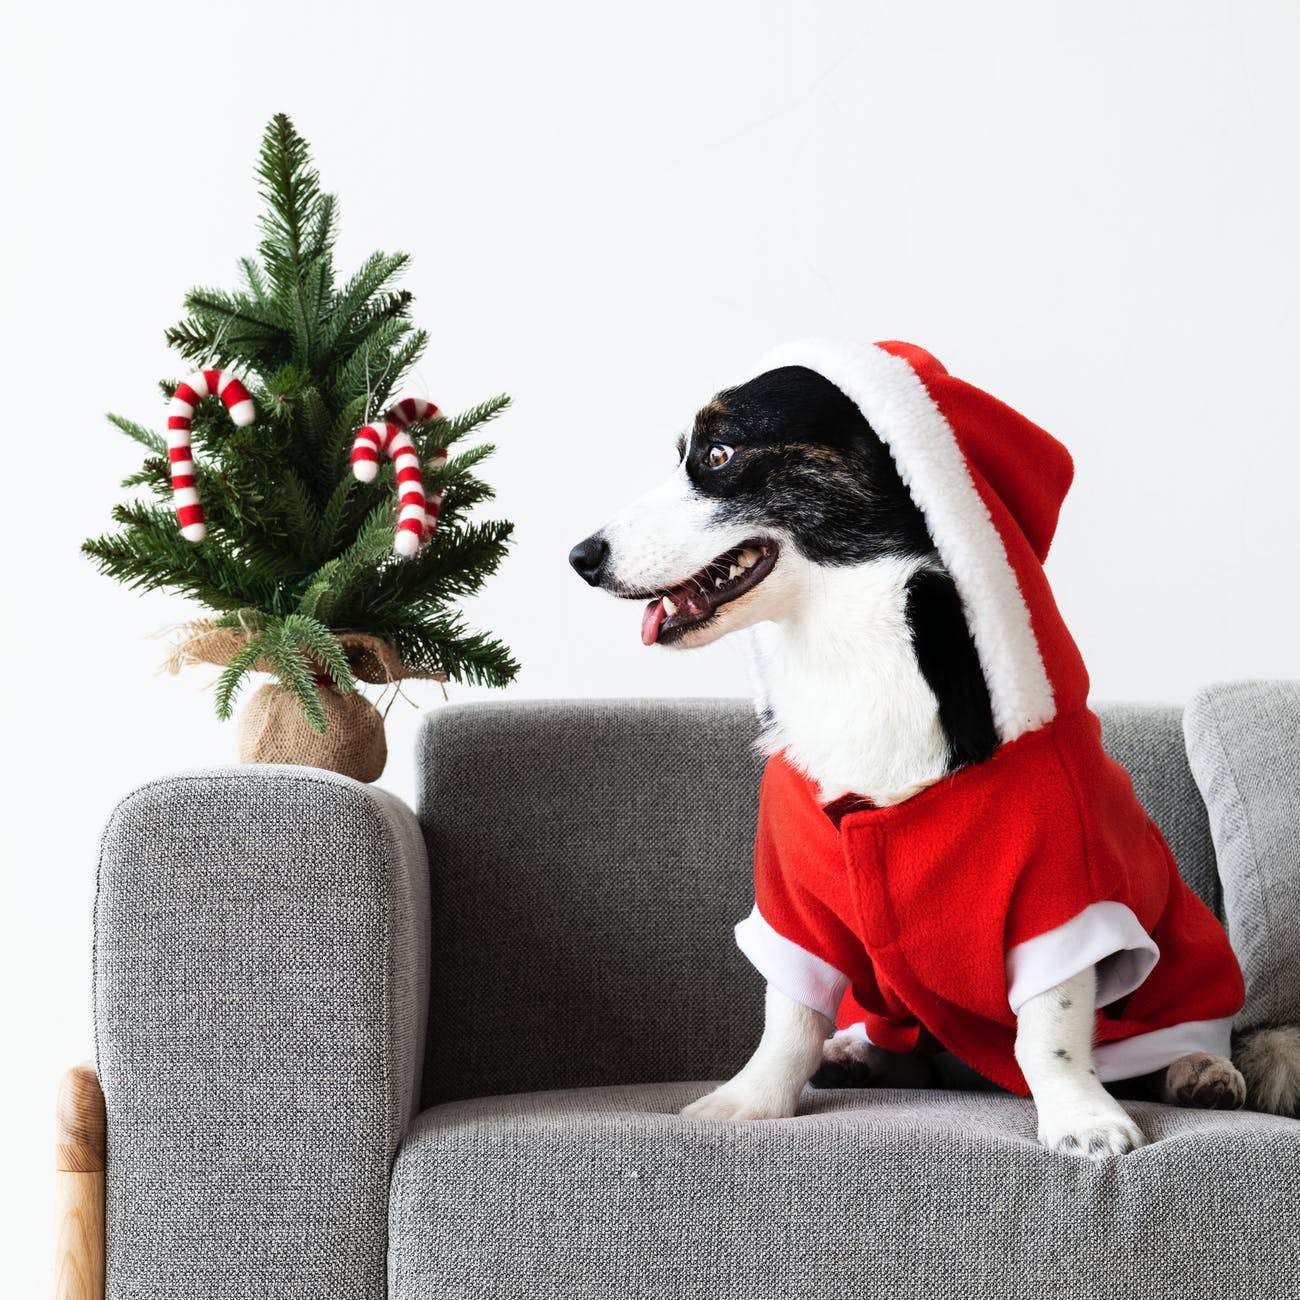 Pet-Proofing Your Apartment for the Holidays